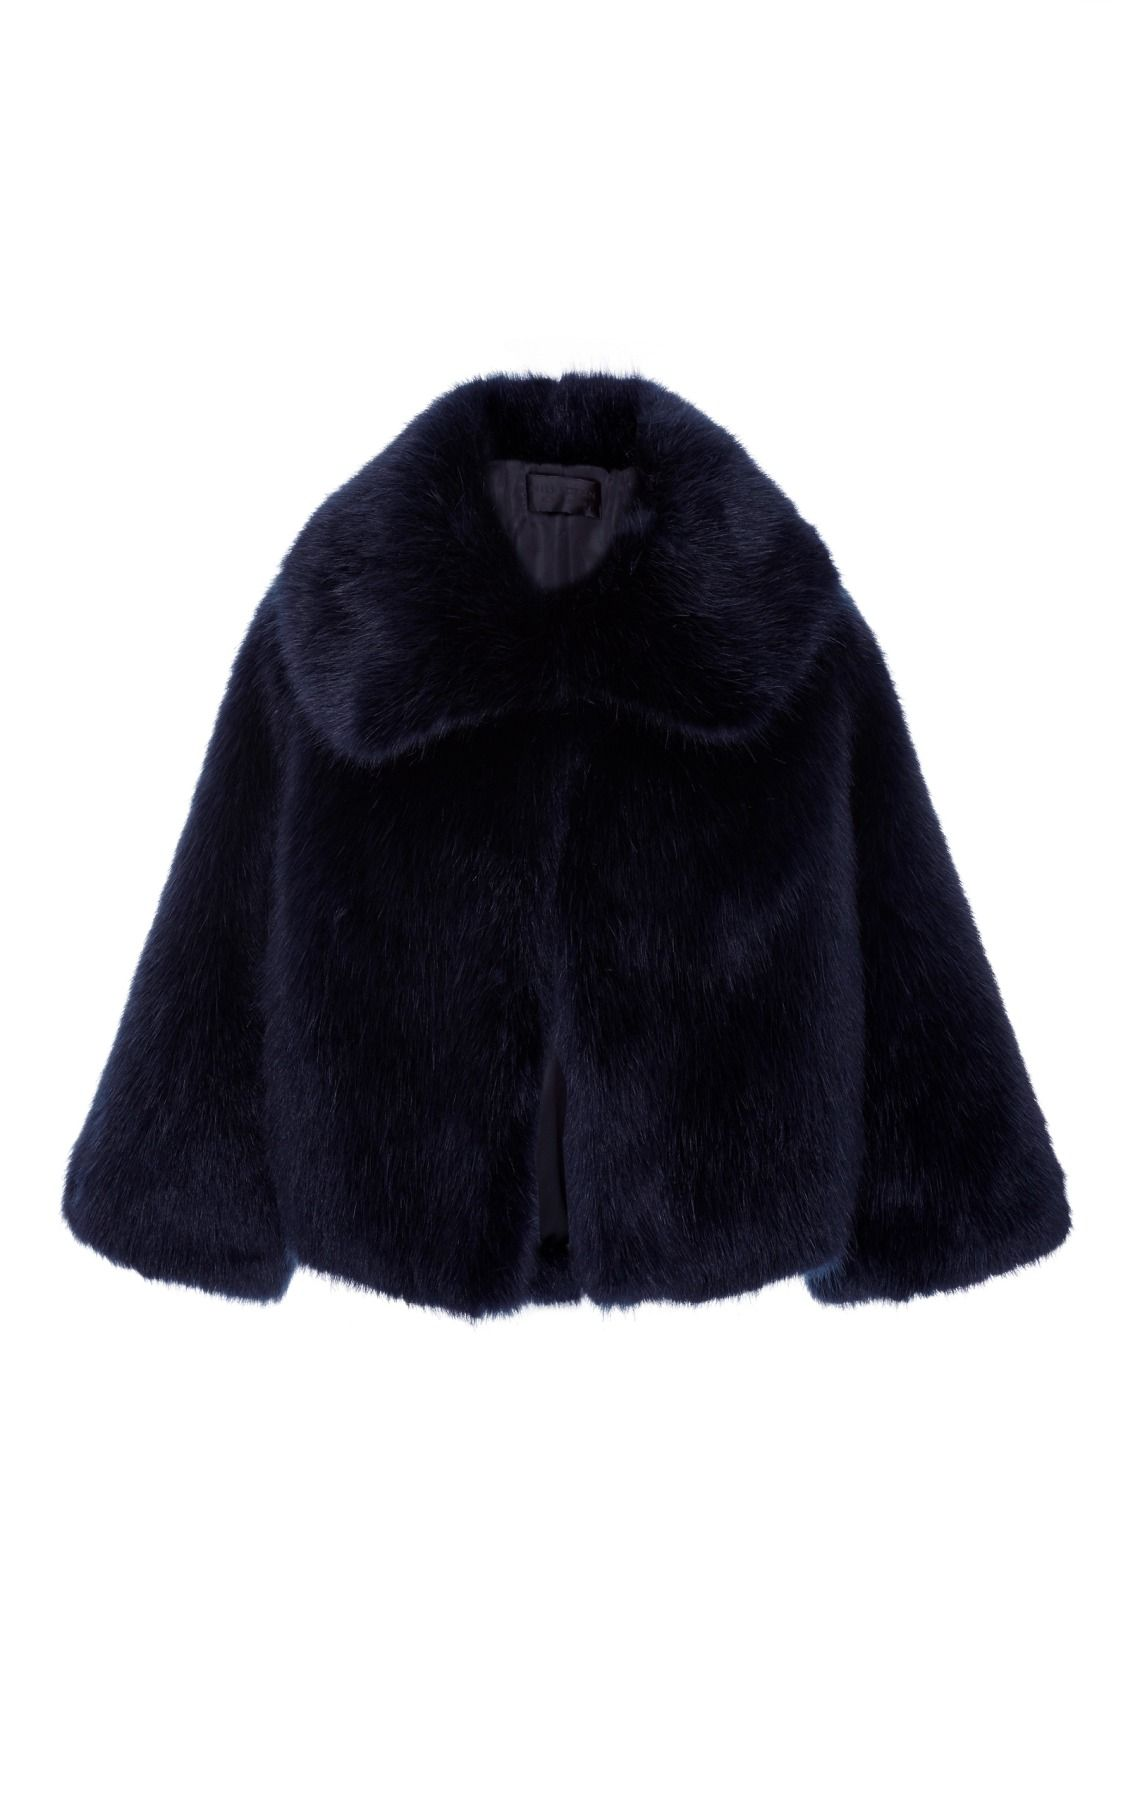 Garbo Faux Fur Coat by Nili Lotan